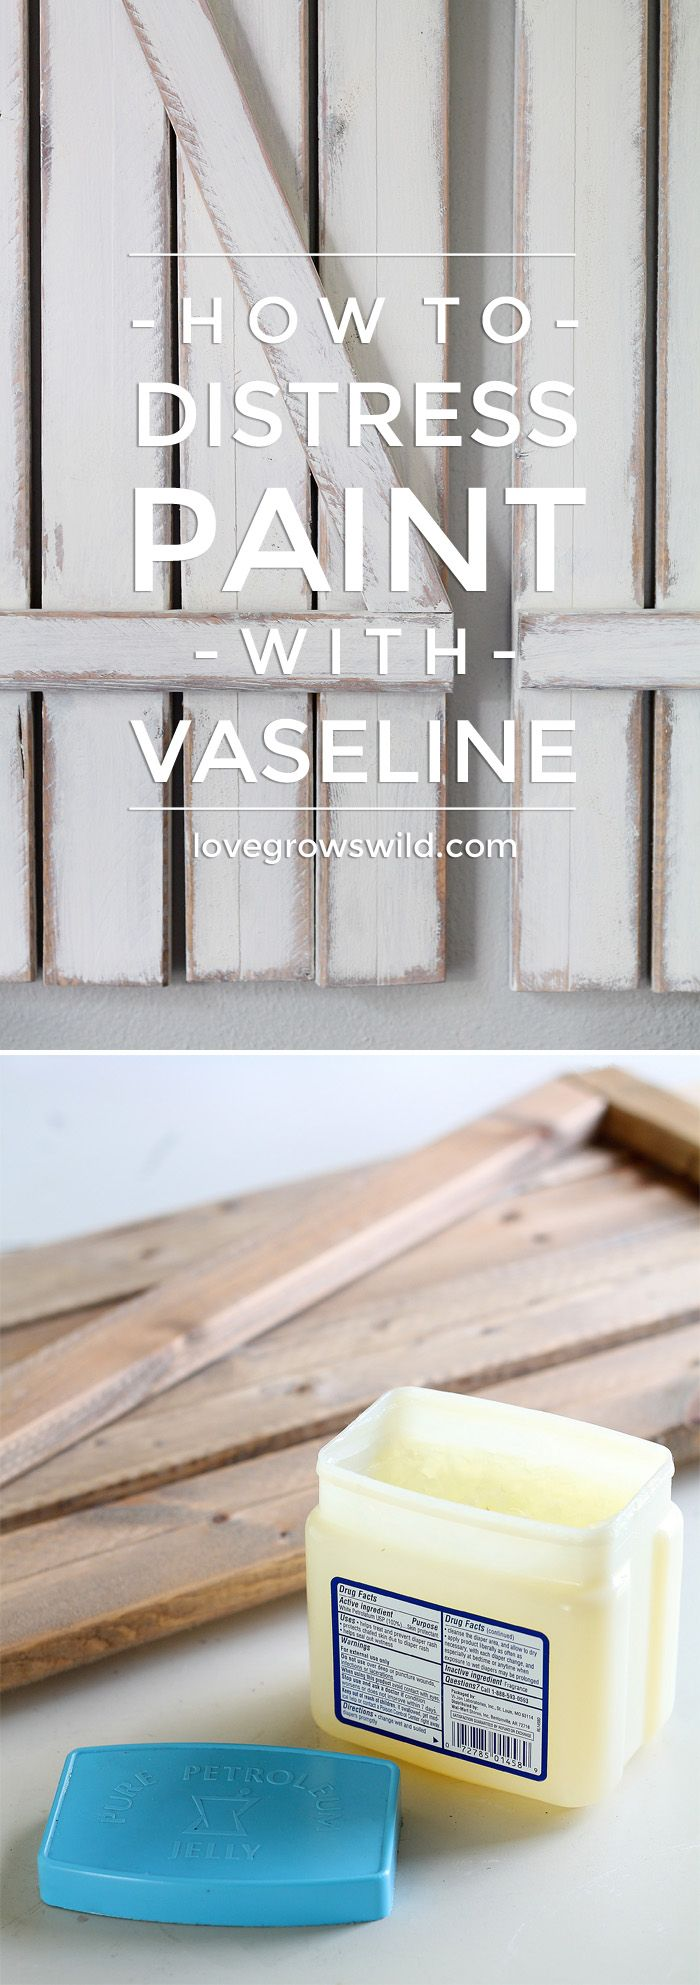 Learn to distress paint the EASY way using Vaseline! Very little effort and NO sanding required! | LoveGrowsWild.com #howto #paint